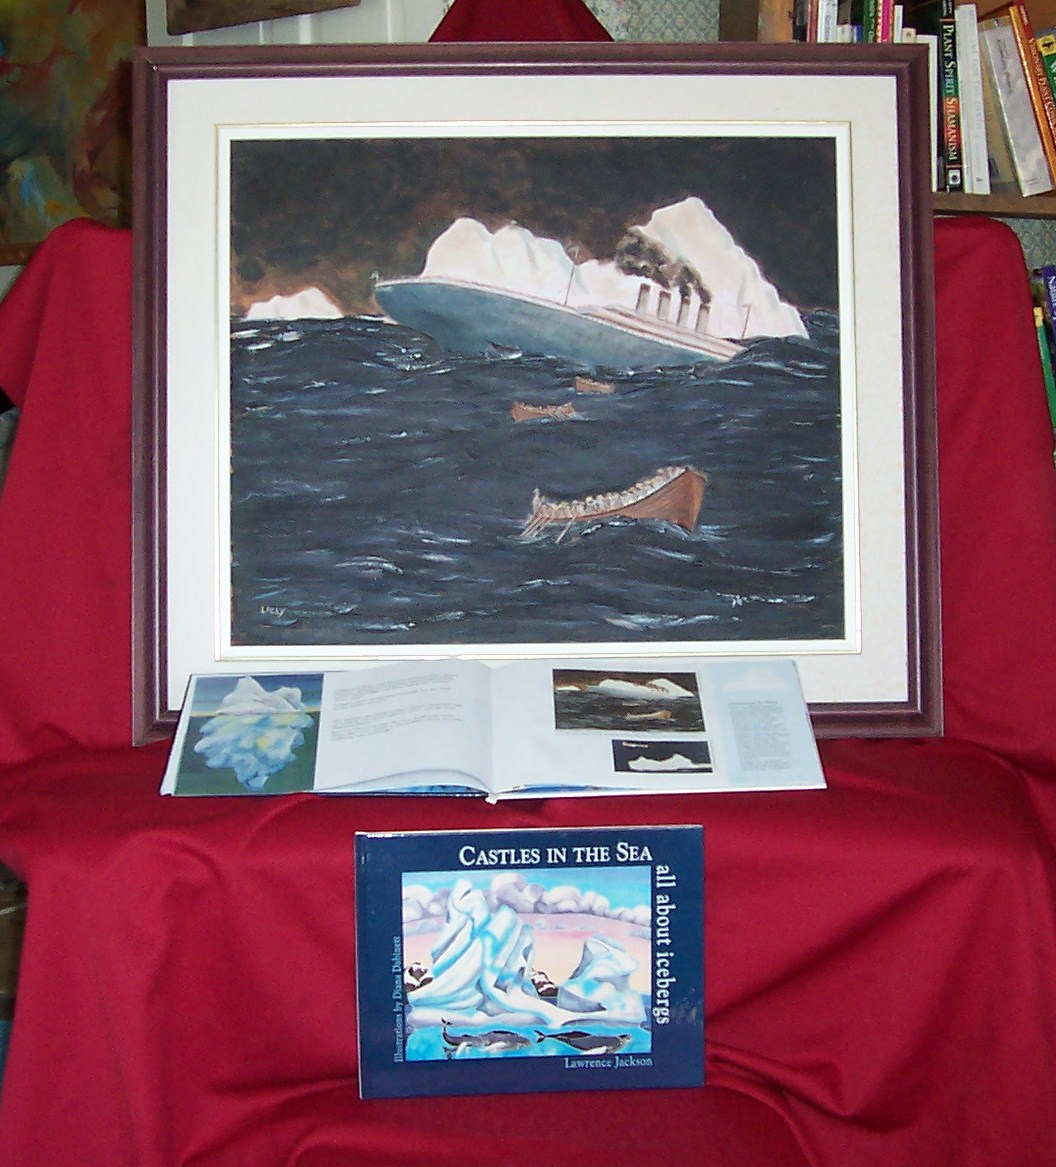 Sinking of the Titanic - Oil Painting, 1997.